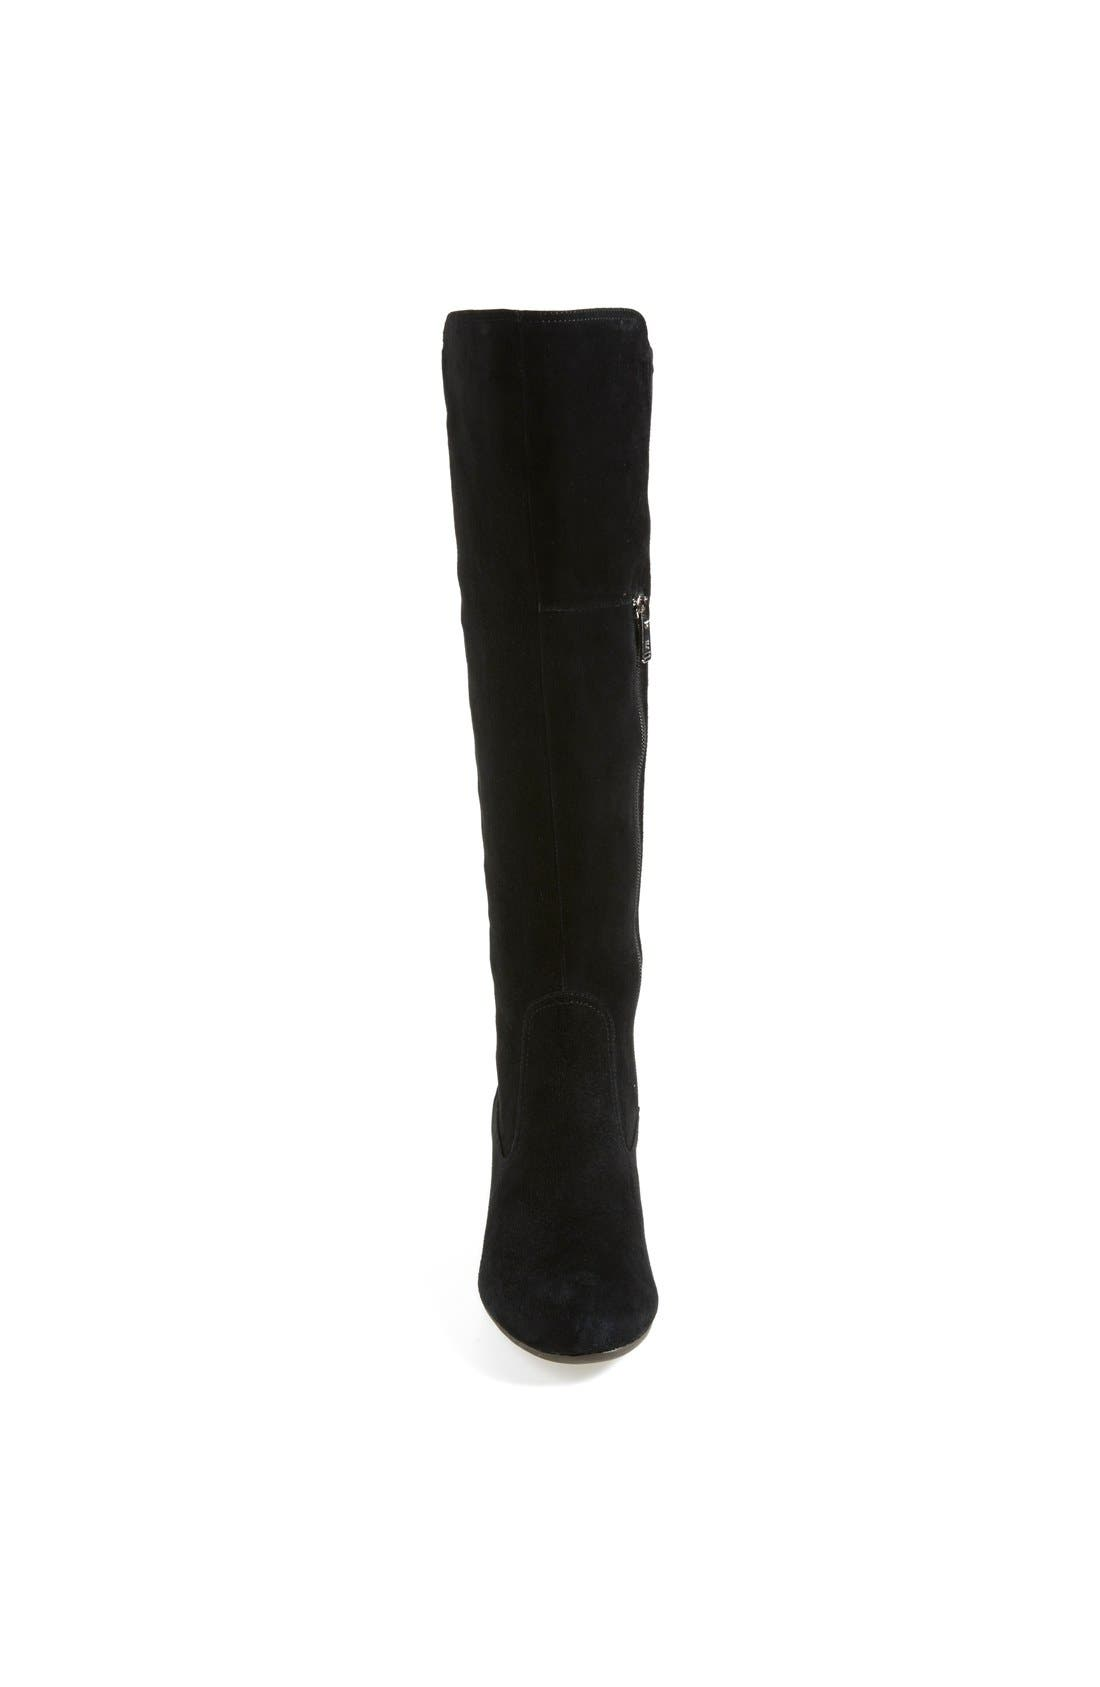 Alternate Image 3  - Rockport 'Total Motion' Knee High Wedge Boot (Women)